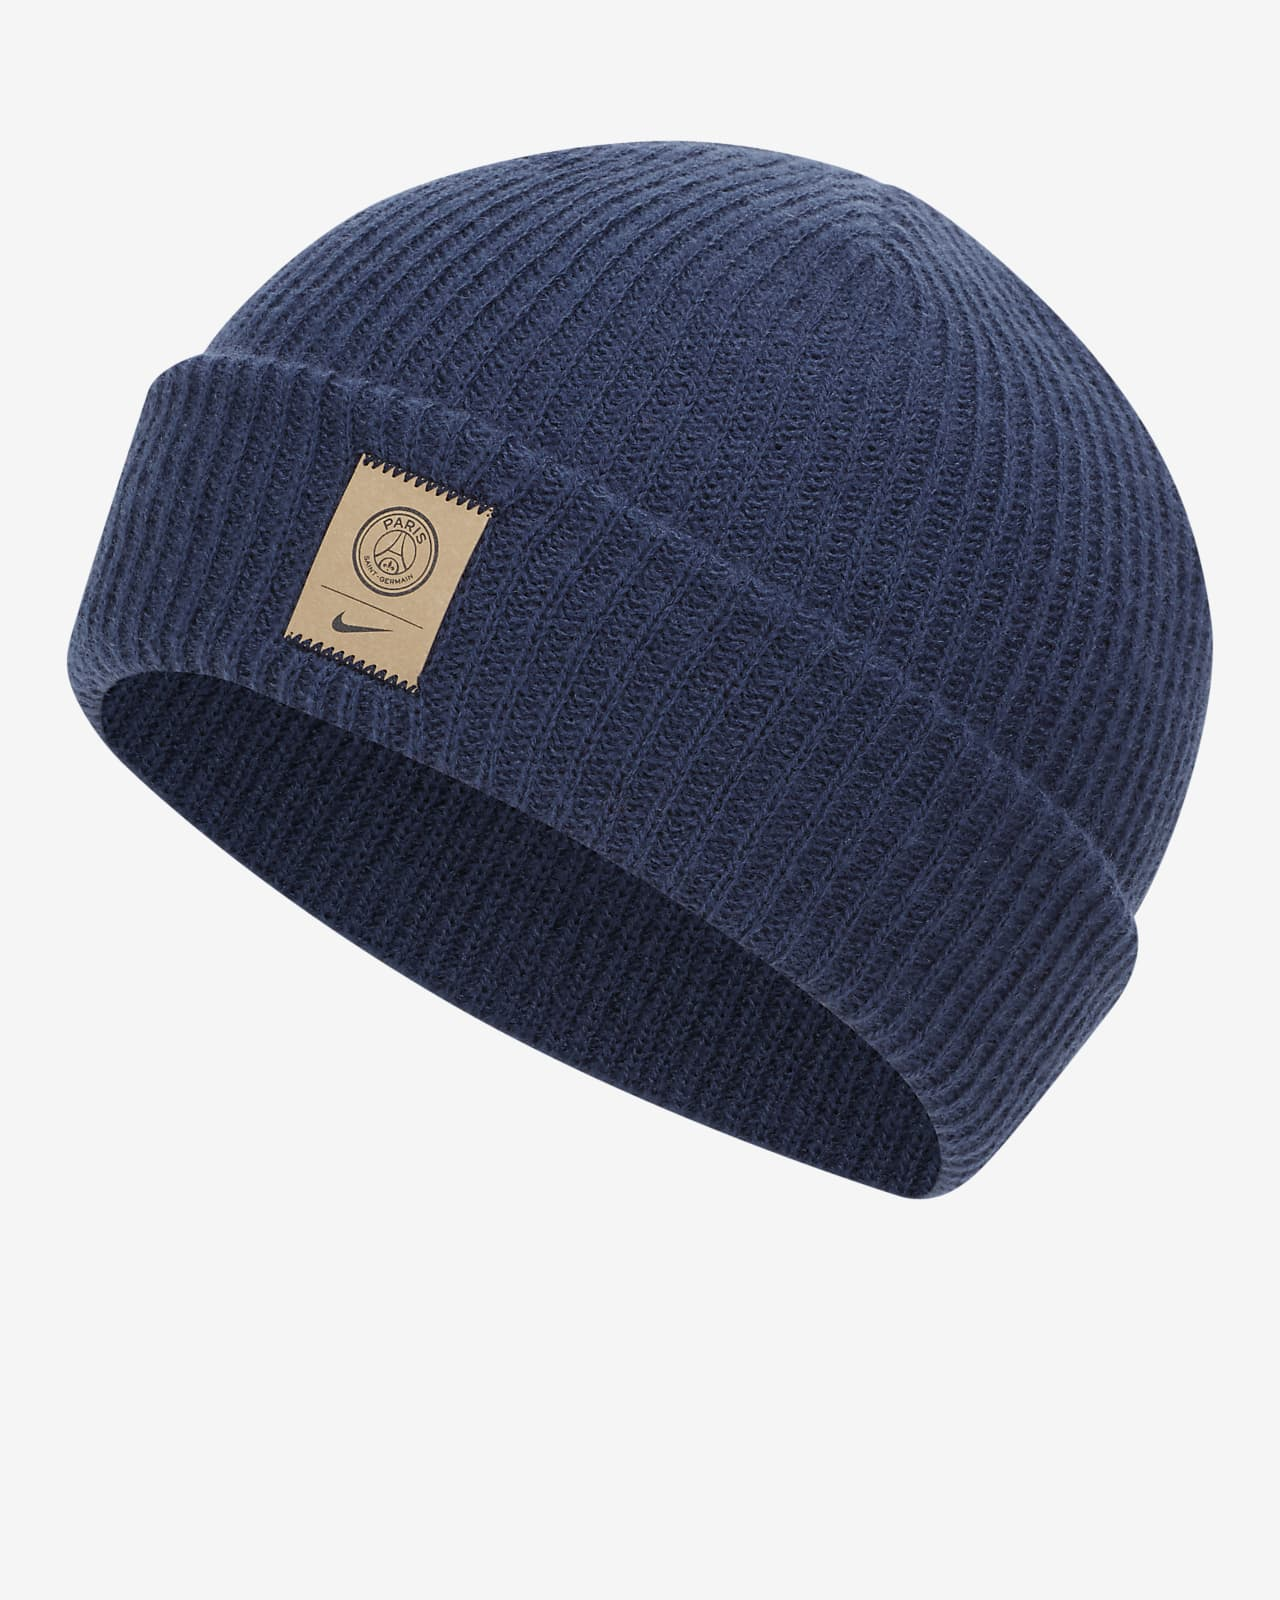 Paris Saint-Germain Cuffed Fisherman Beanie